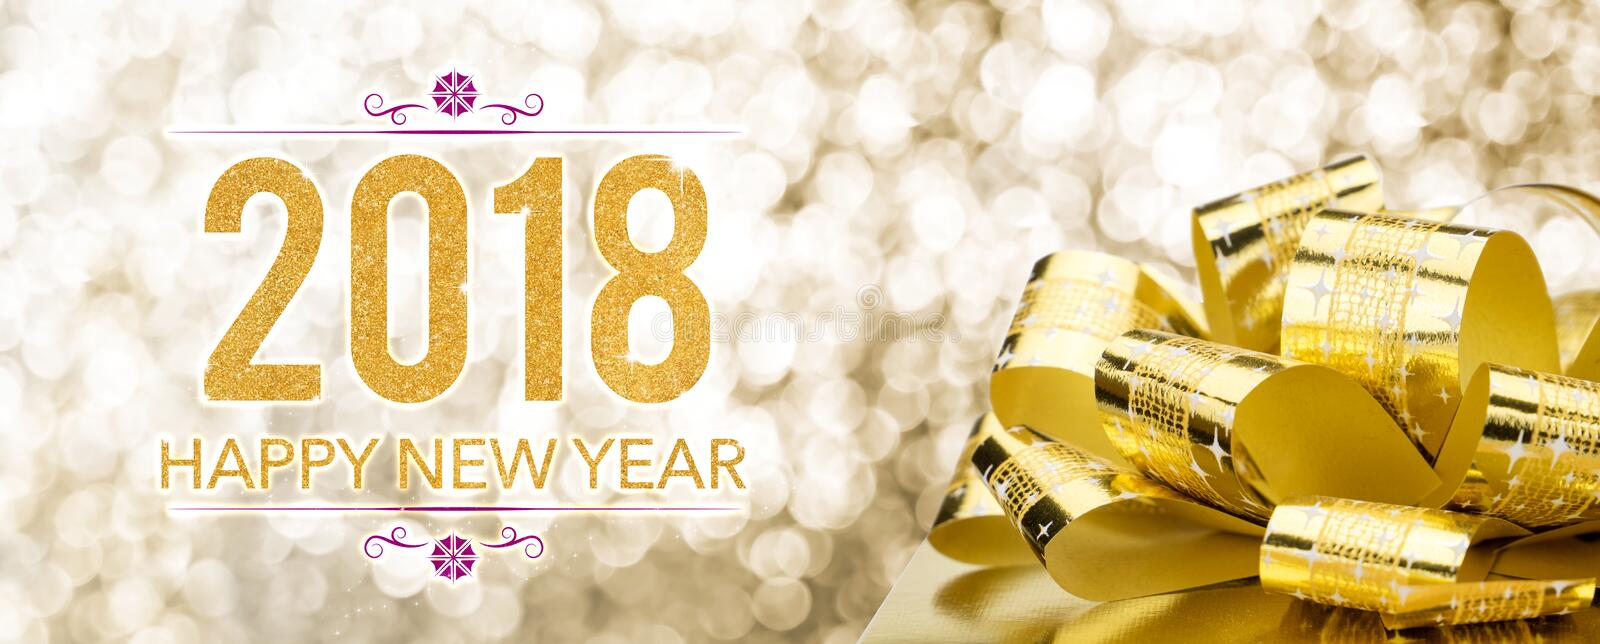 Download Happy New Year 2018 With Golden Gift Box With Big Bow At Sparkli Stock Image - Image of holiday, design: 94351045